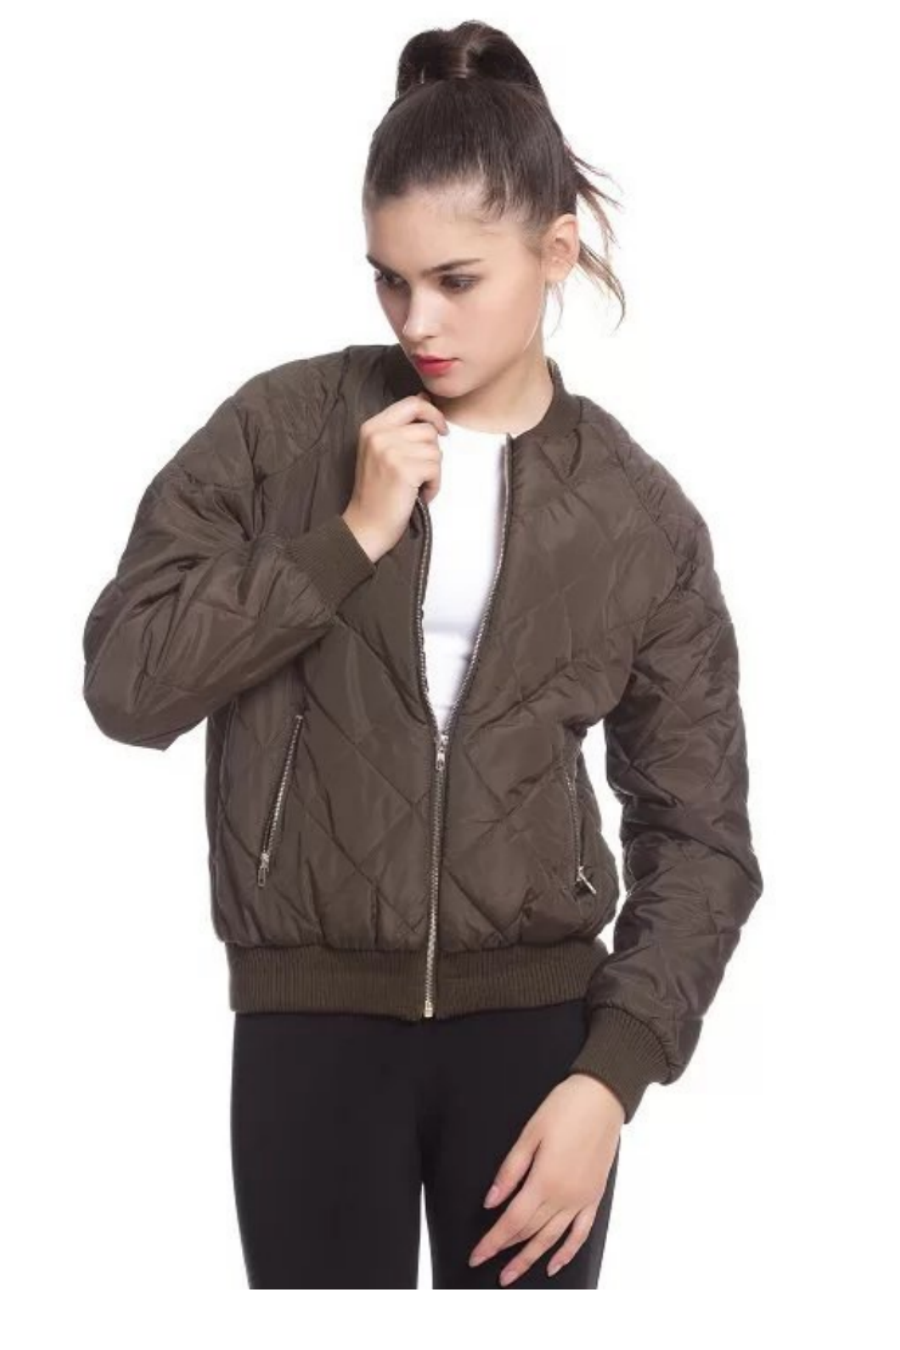 Army Green Zip Jacket